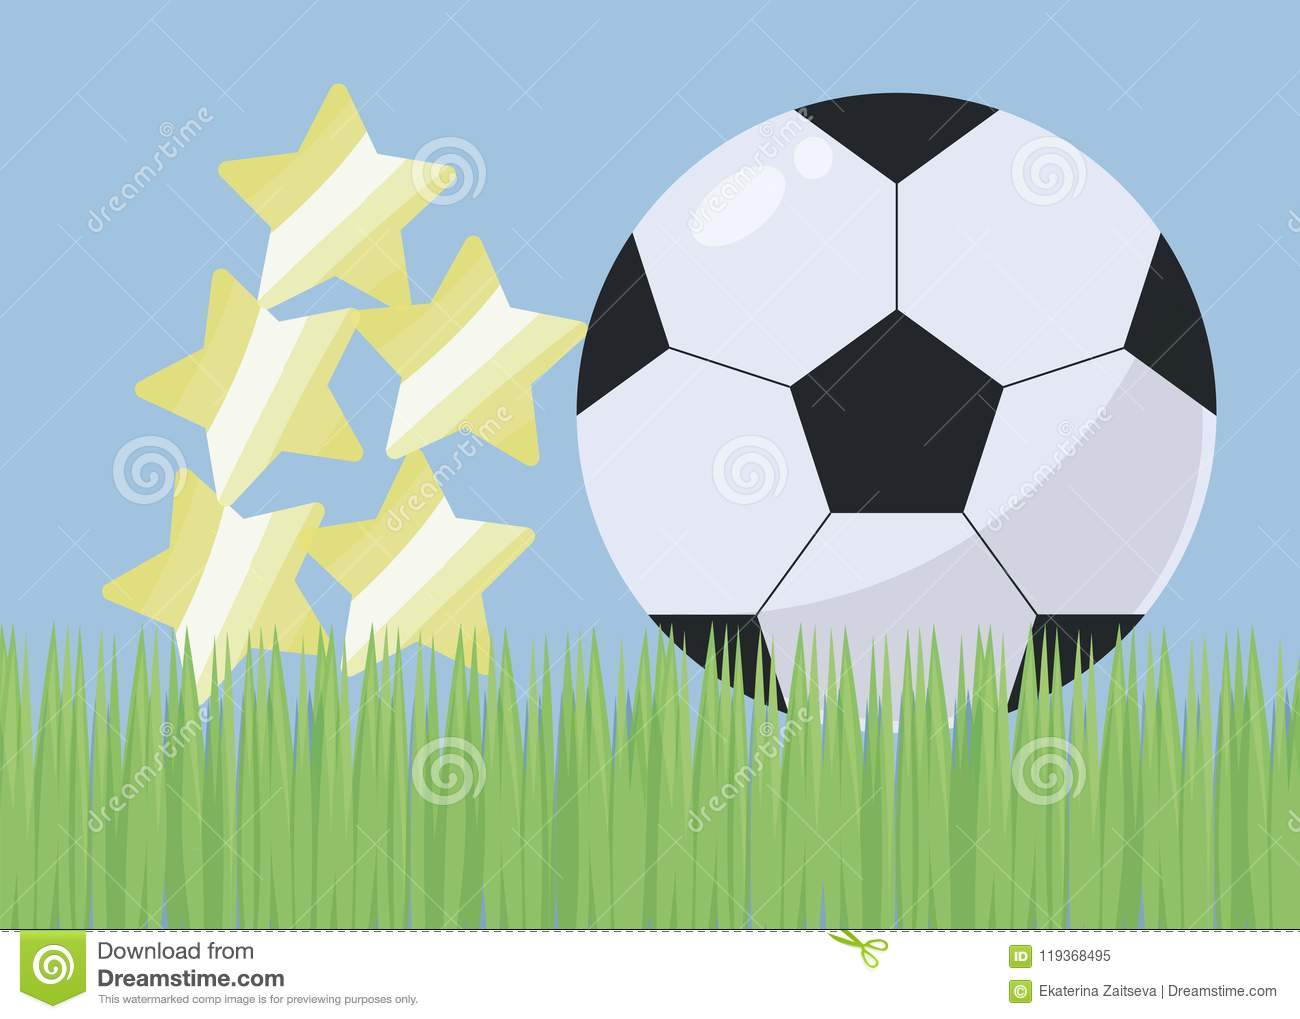 Soccer Football On Green Field With Blue Sky Background: Illustration With Bright Green Grass Football Field Blue